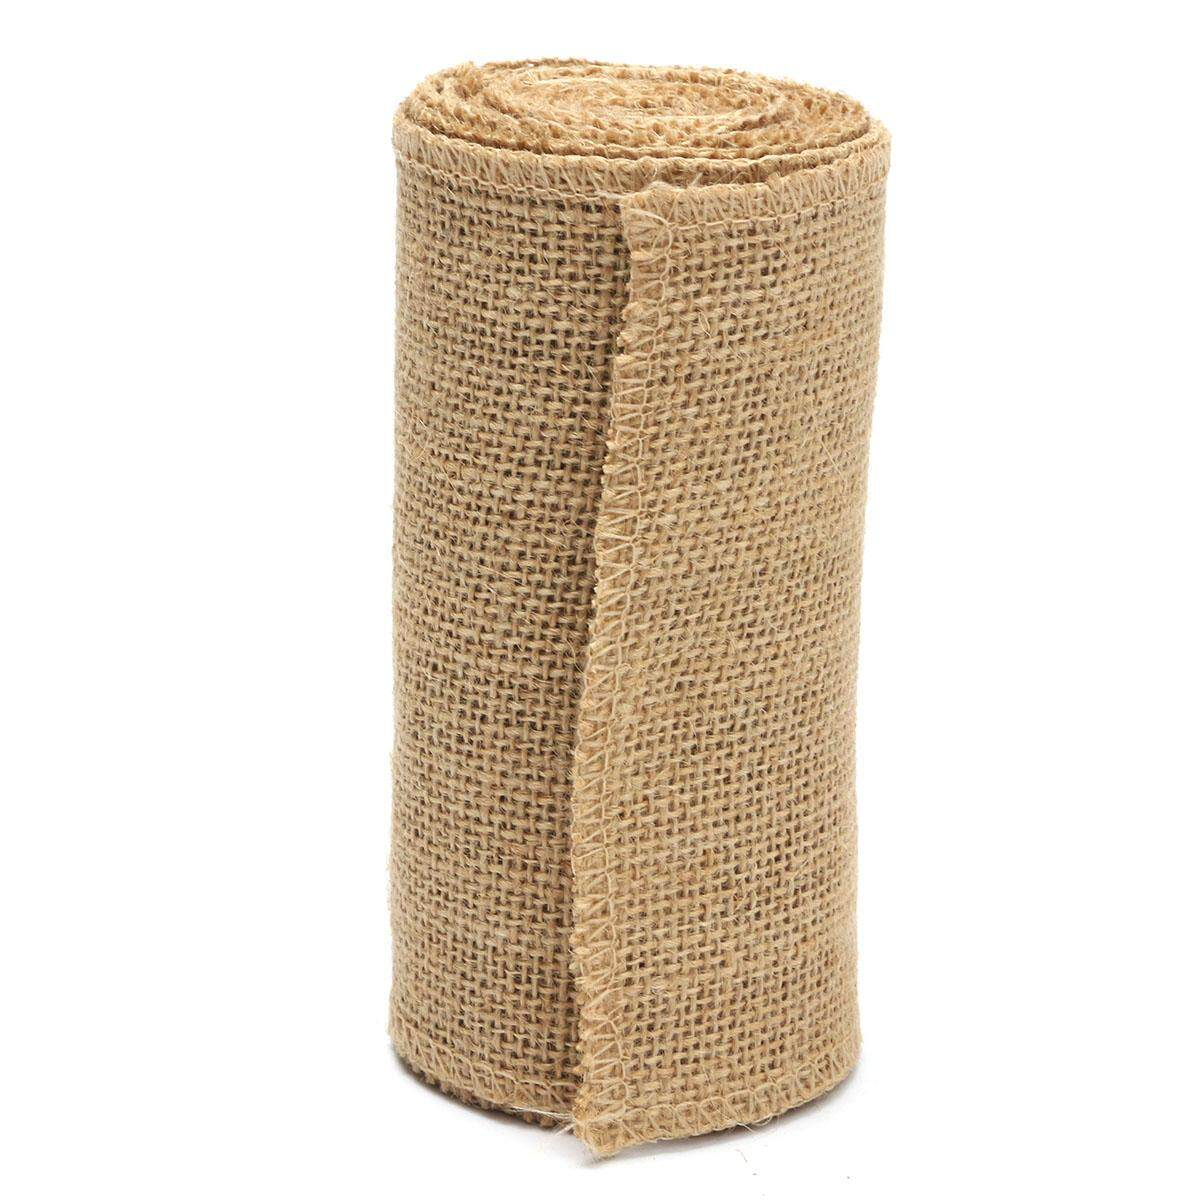 【Free Shipping】1Pcs Hessian Sashes Chair Cover Bows Jute Burlap Vintage Rustic Wedding Decor